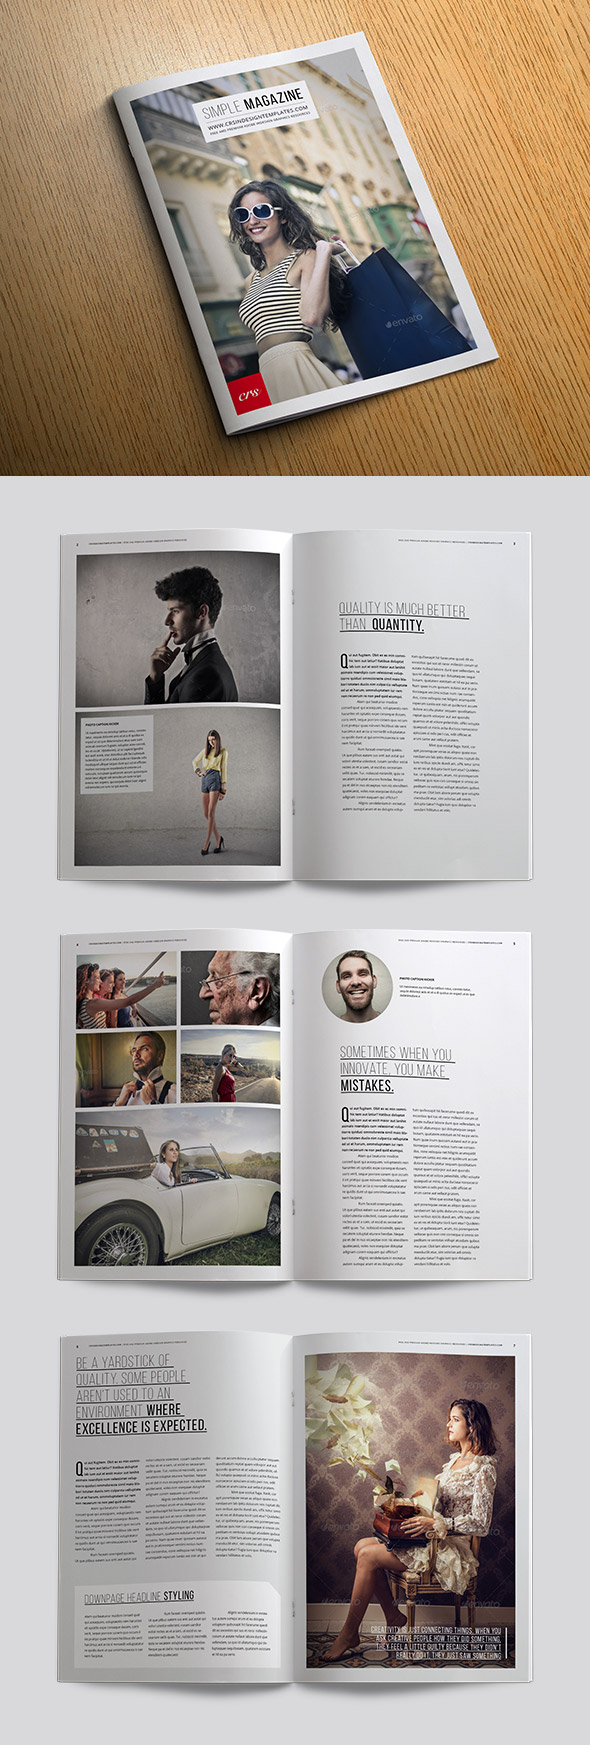 Free simple magazine template crs indesign templates for Adobe indesign magazine templates free download